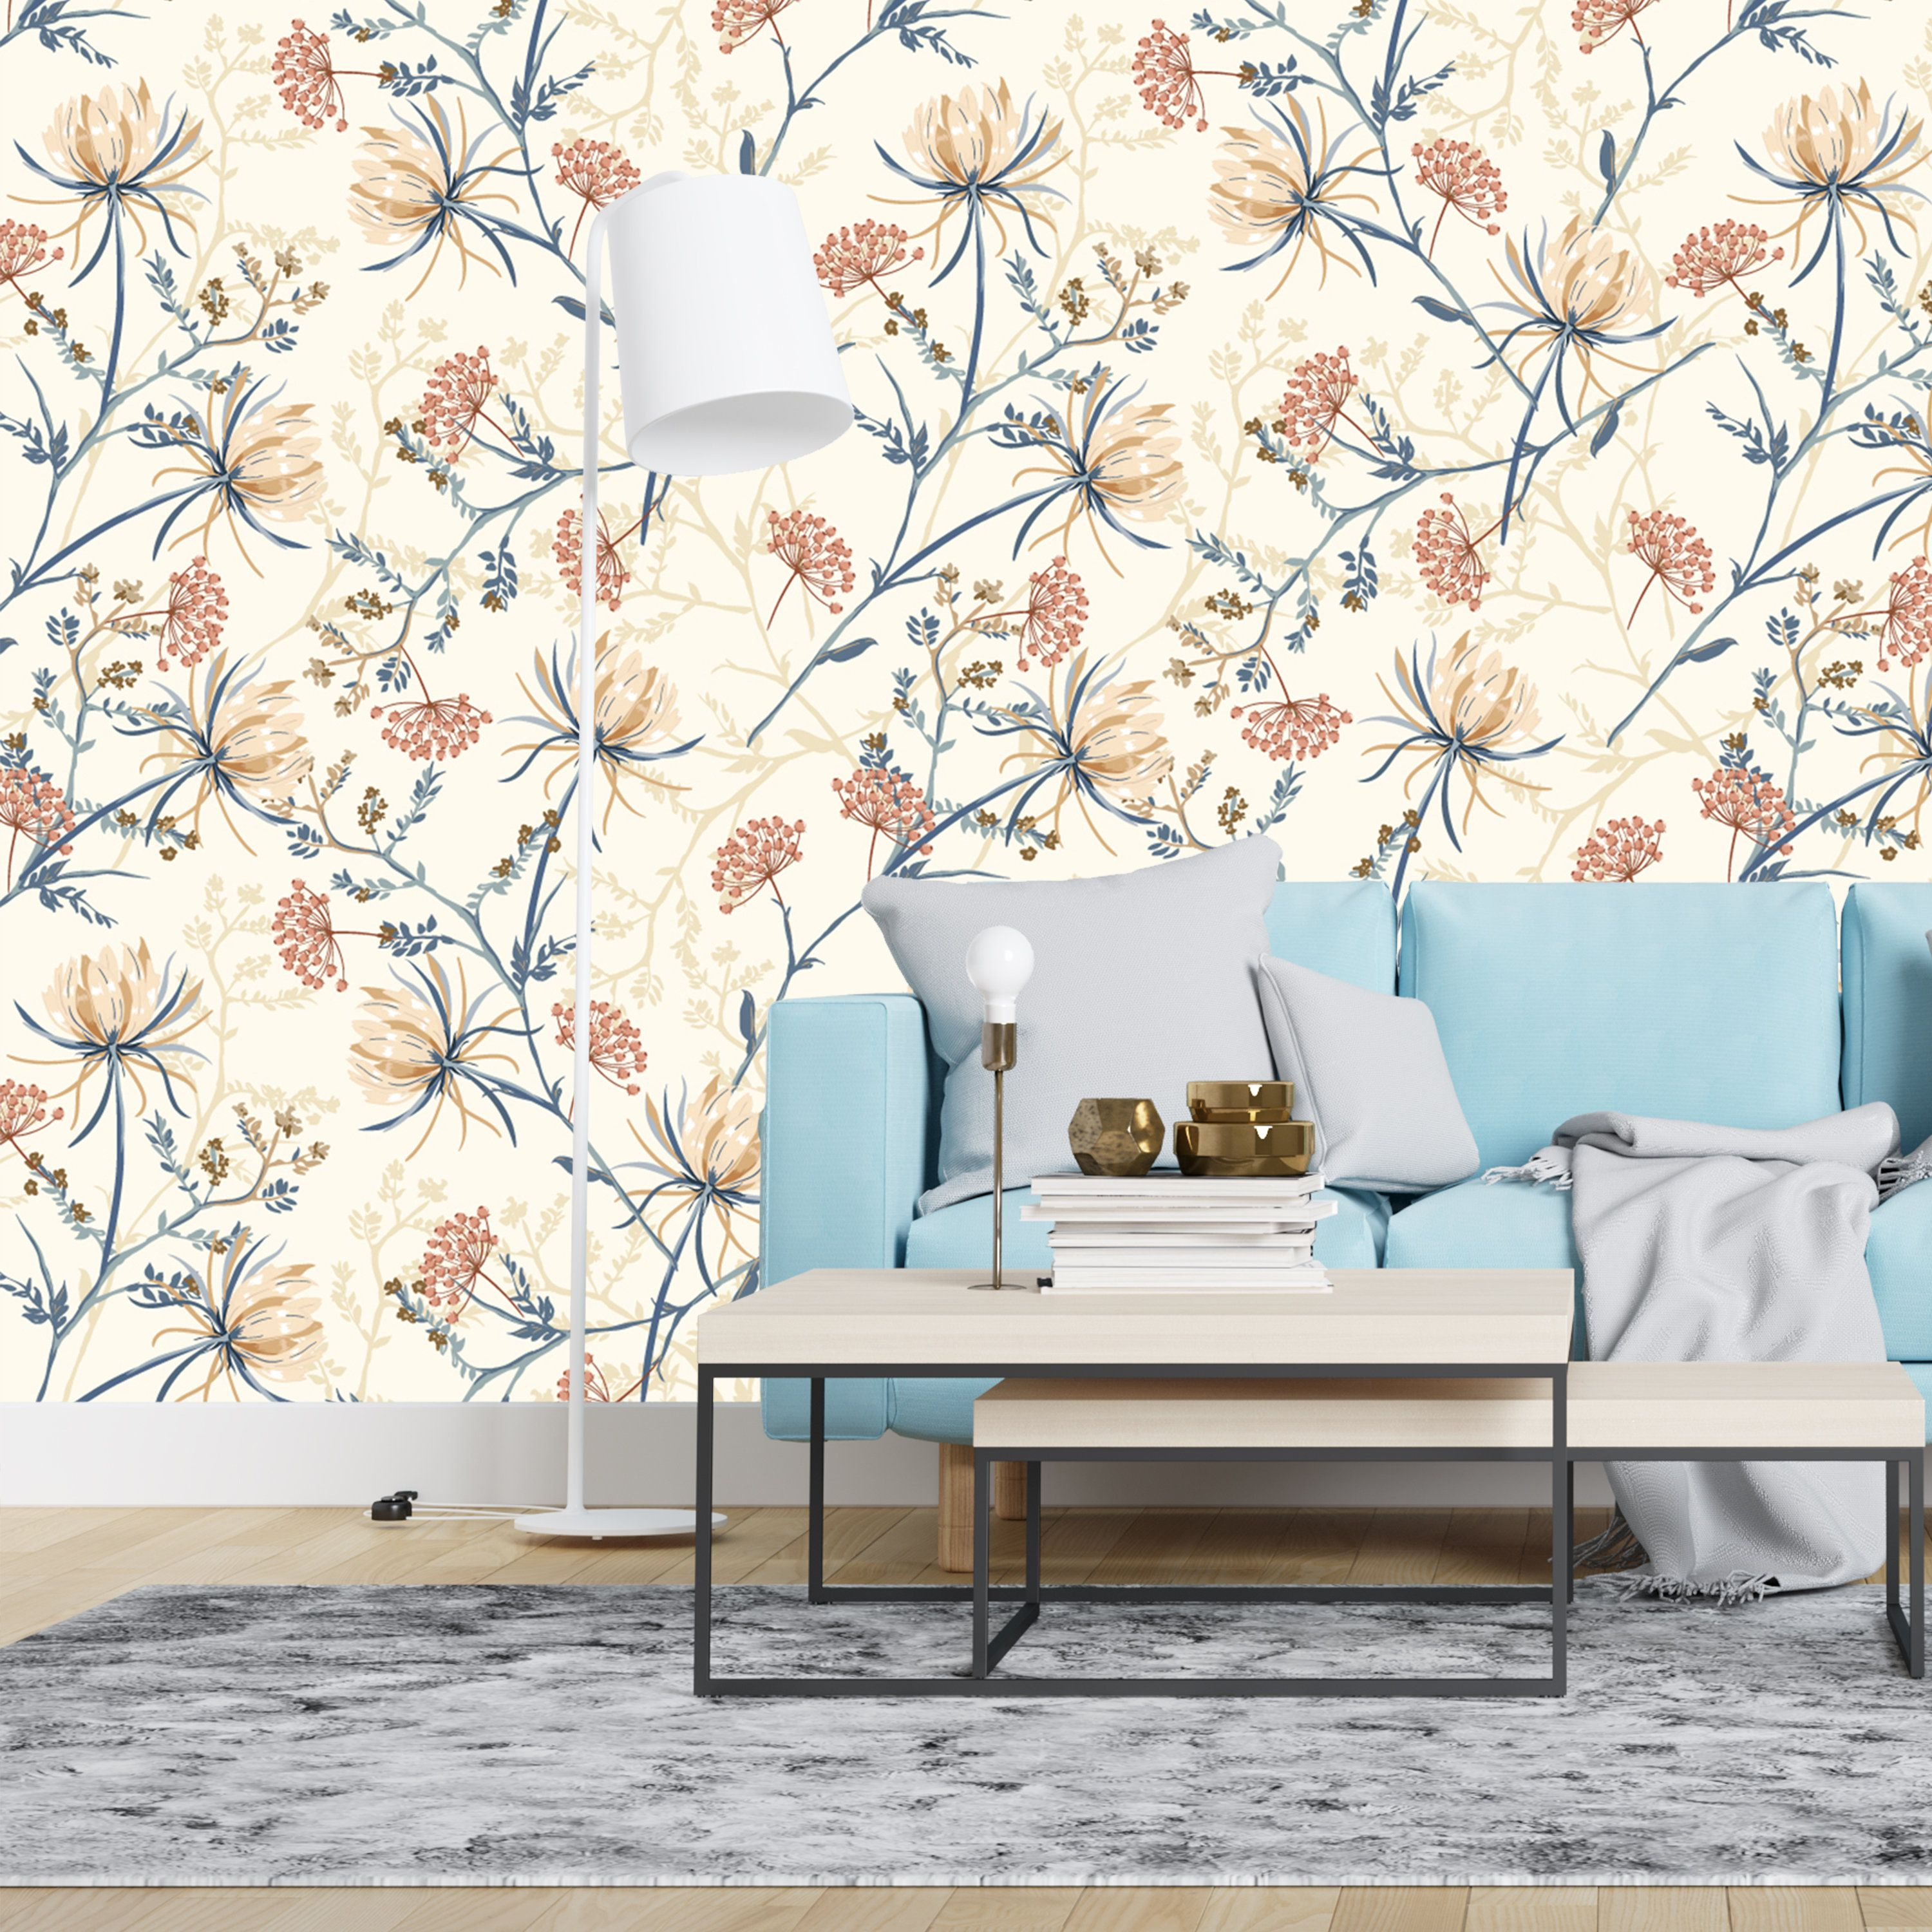 Peel And Stick Blooming Oriental Flowers Removable Wallpaper Etsy Cafe Decor Inexpensive Home Decor Home Decor